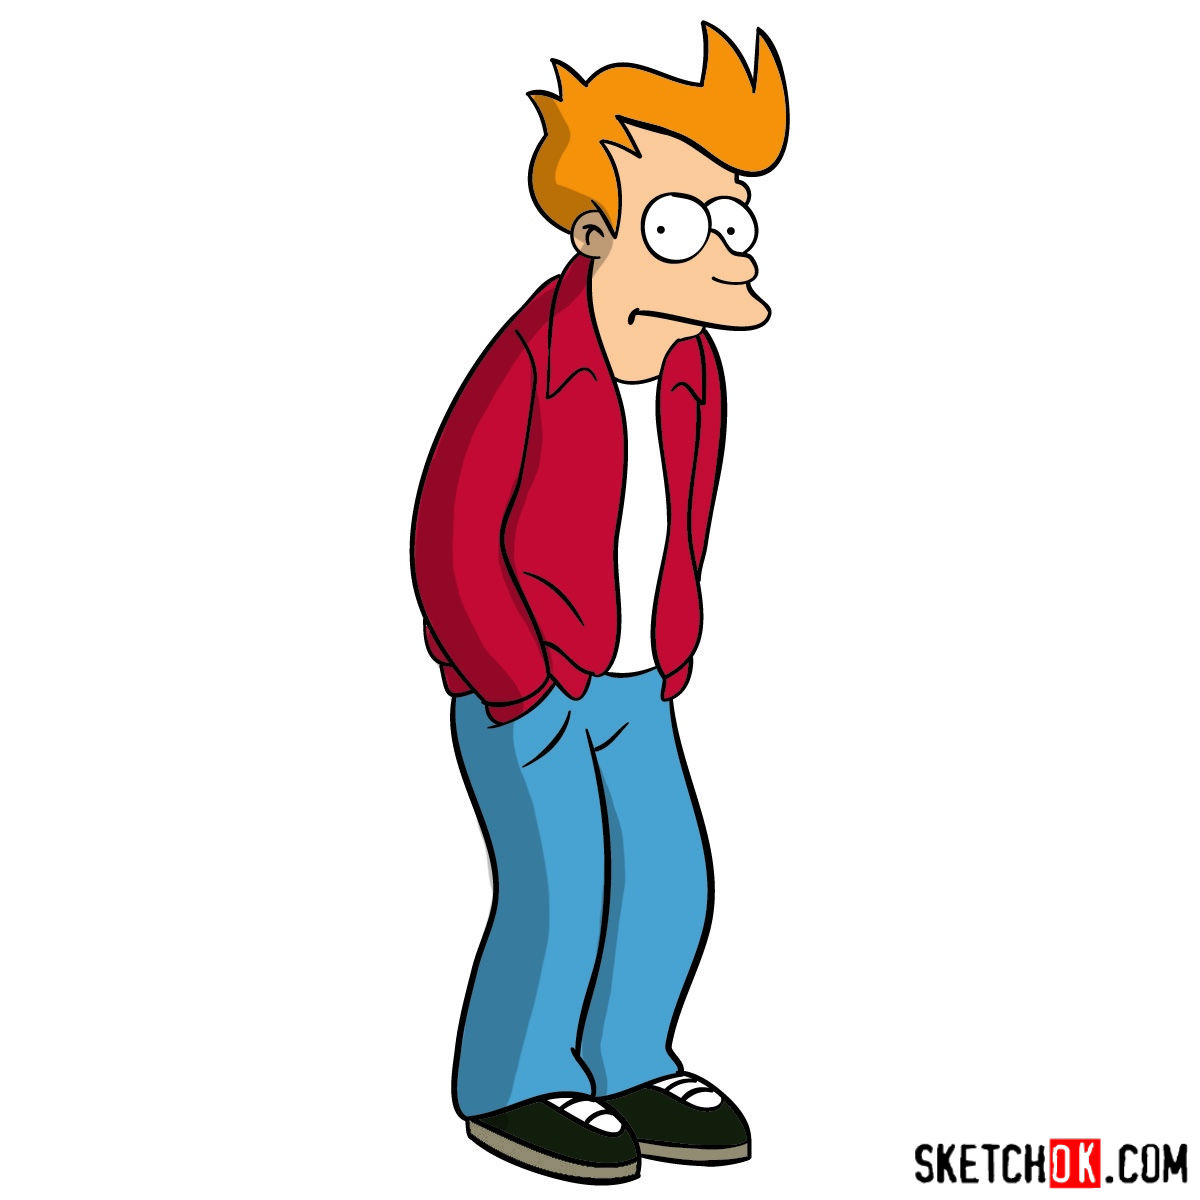 How to draw Philip J. Fry